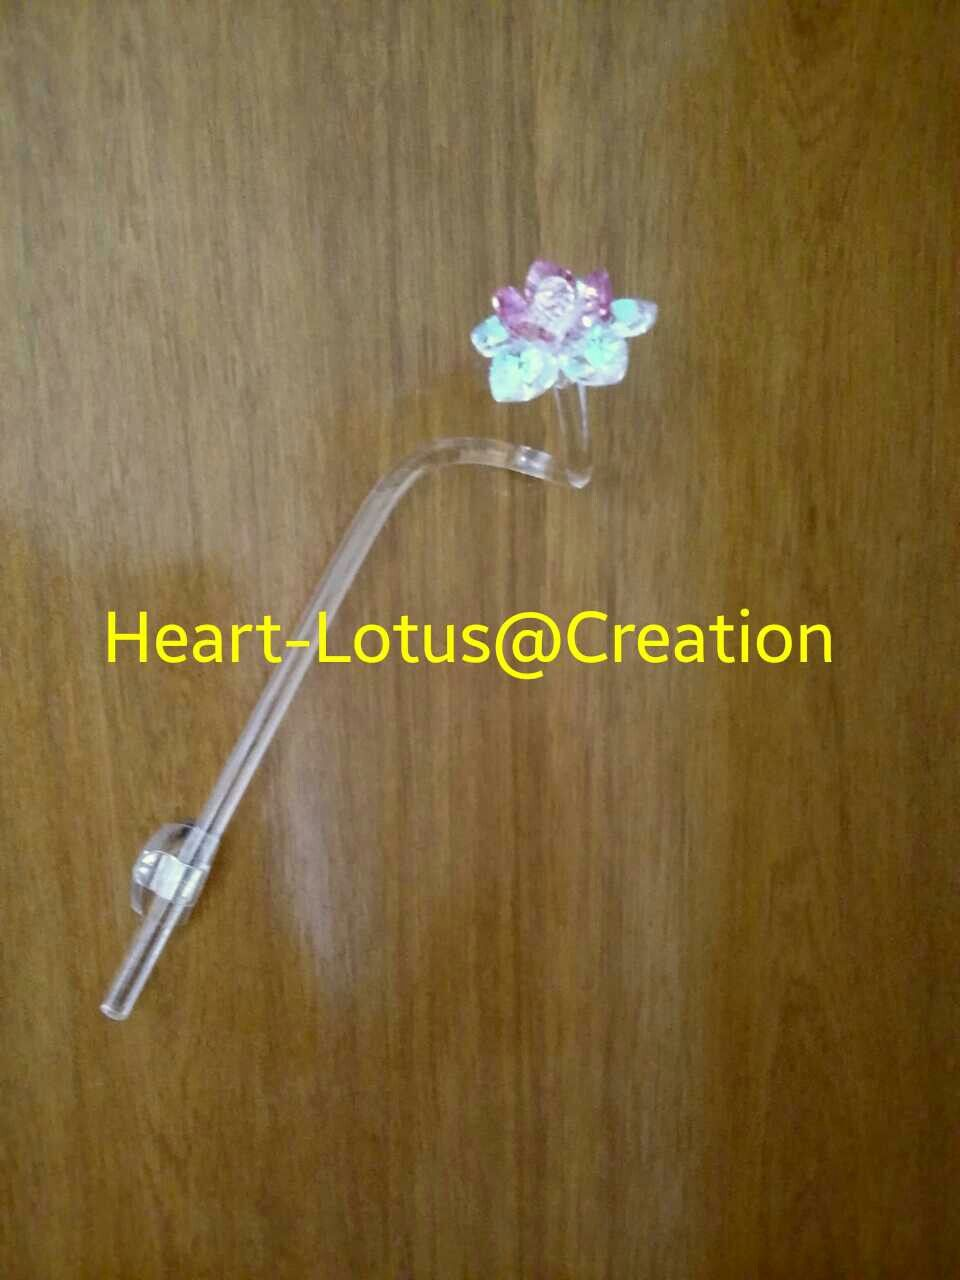 Singke Stalk Sacred Crystal Lotus Flower For Your Door A Sign Of